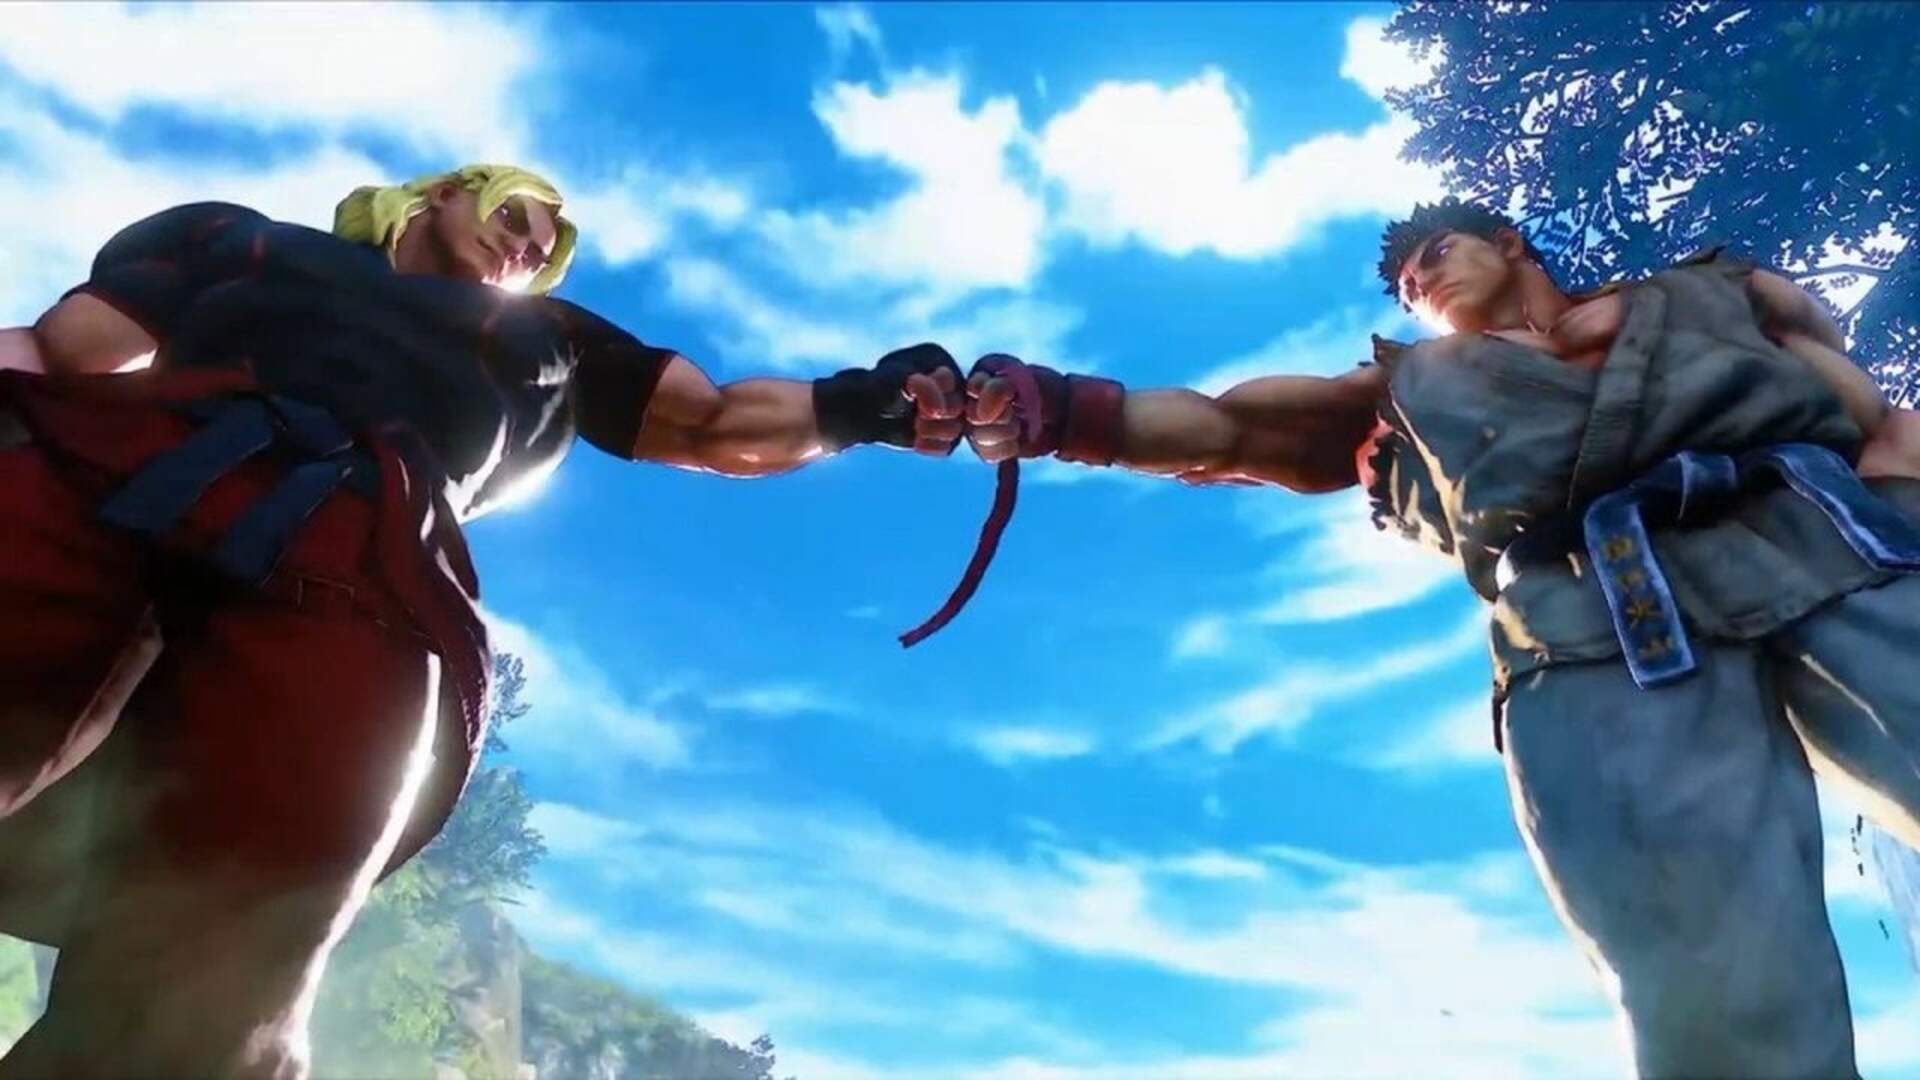 Why Video Game Rivalries Can be Beautiful